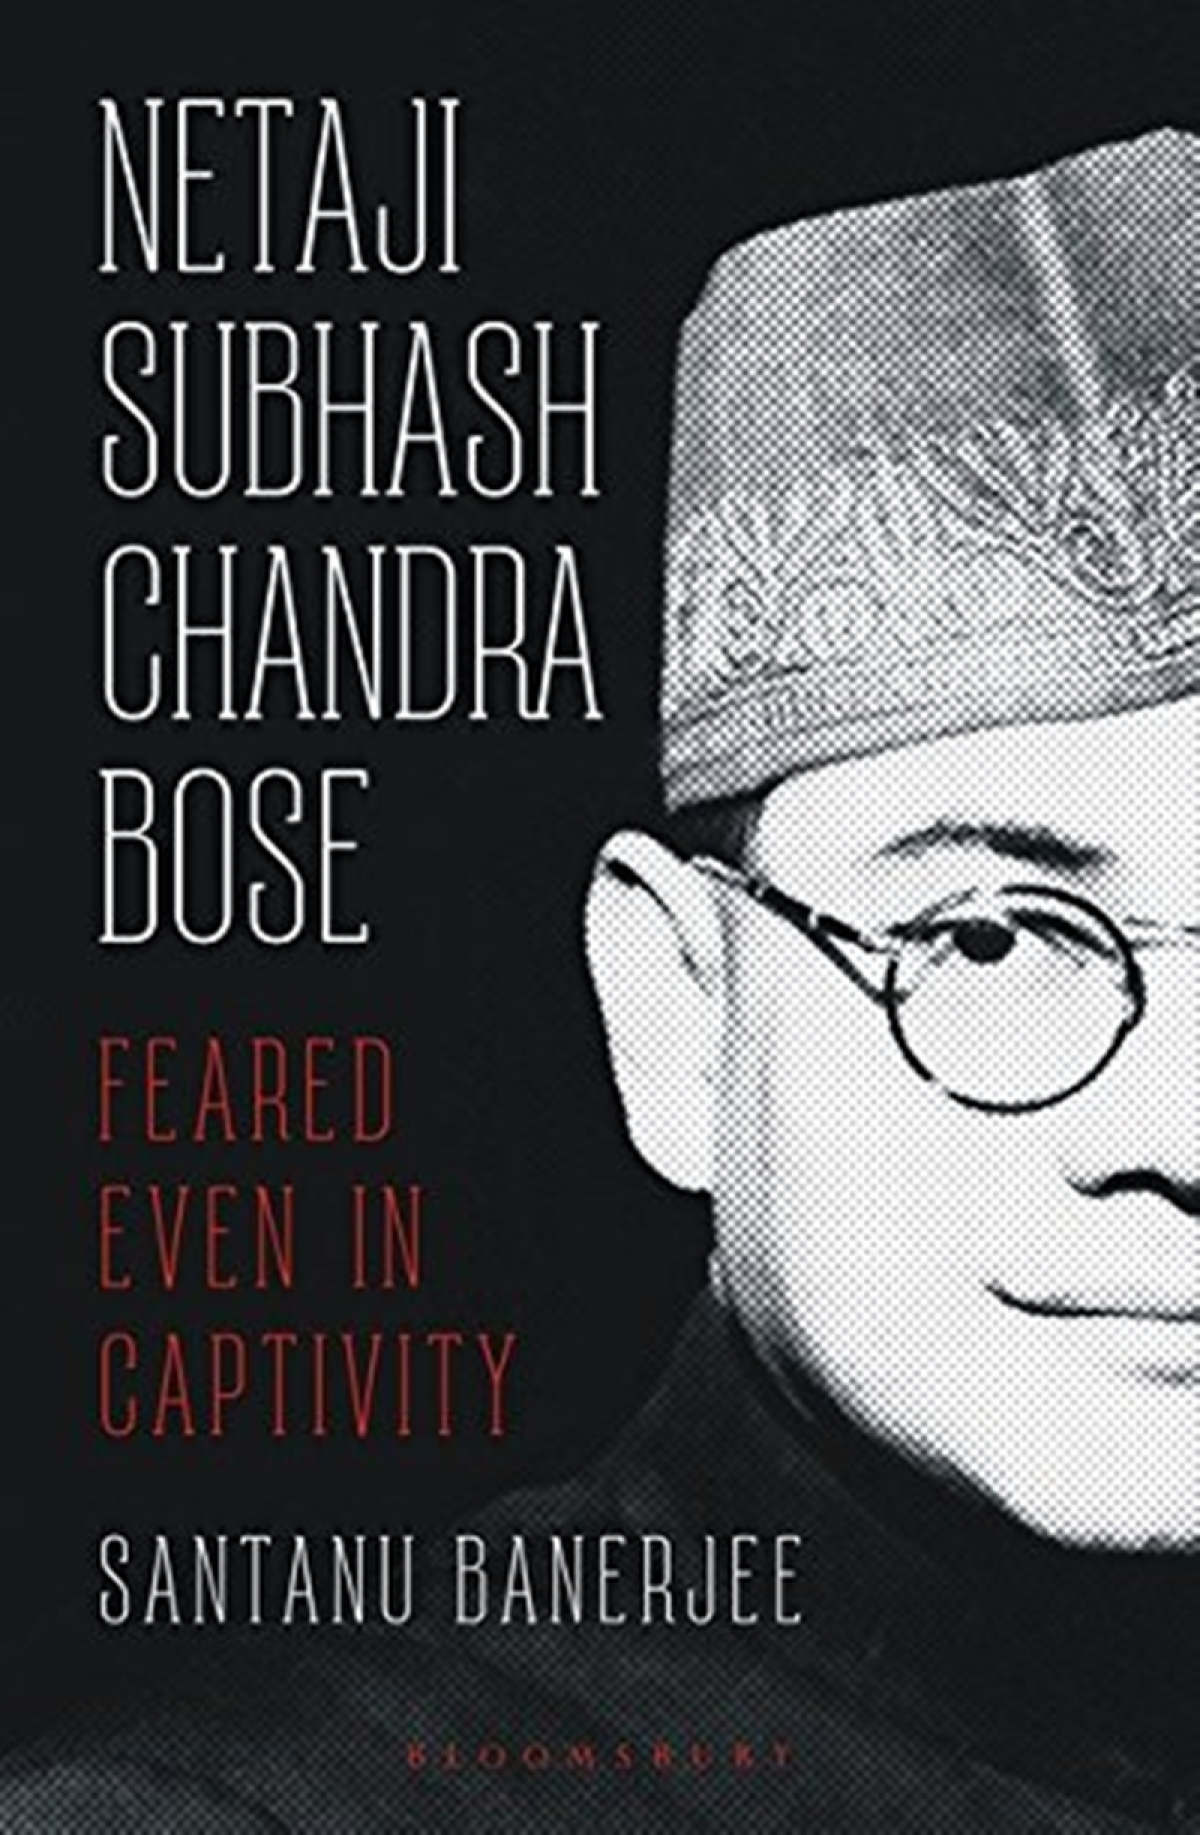 Netaji Subhash Chandra Bose: Feared Even in Captivity by Santanu Banerjee- Review